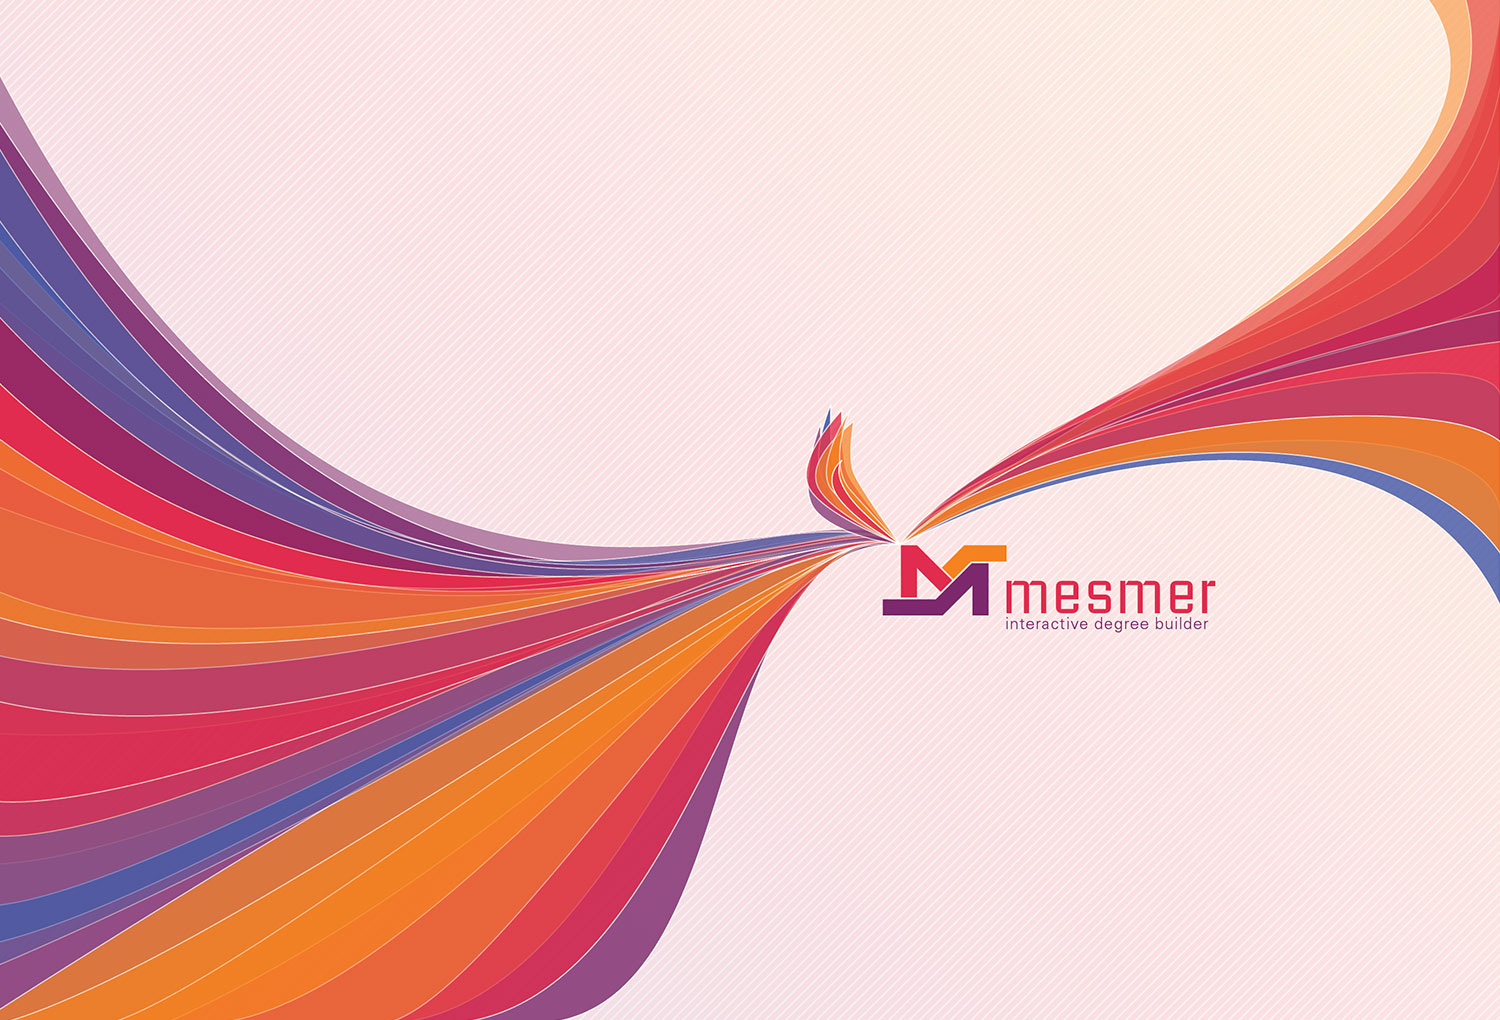 Mesmer brand book cover